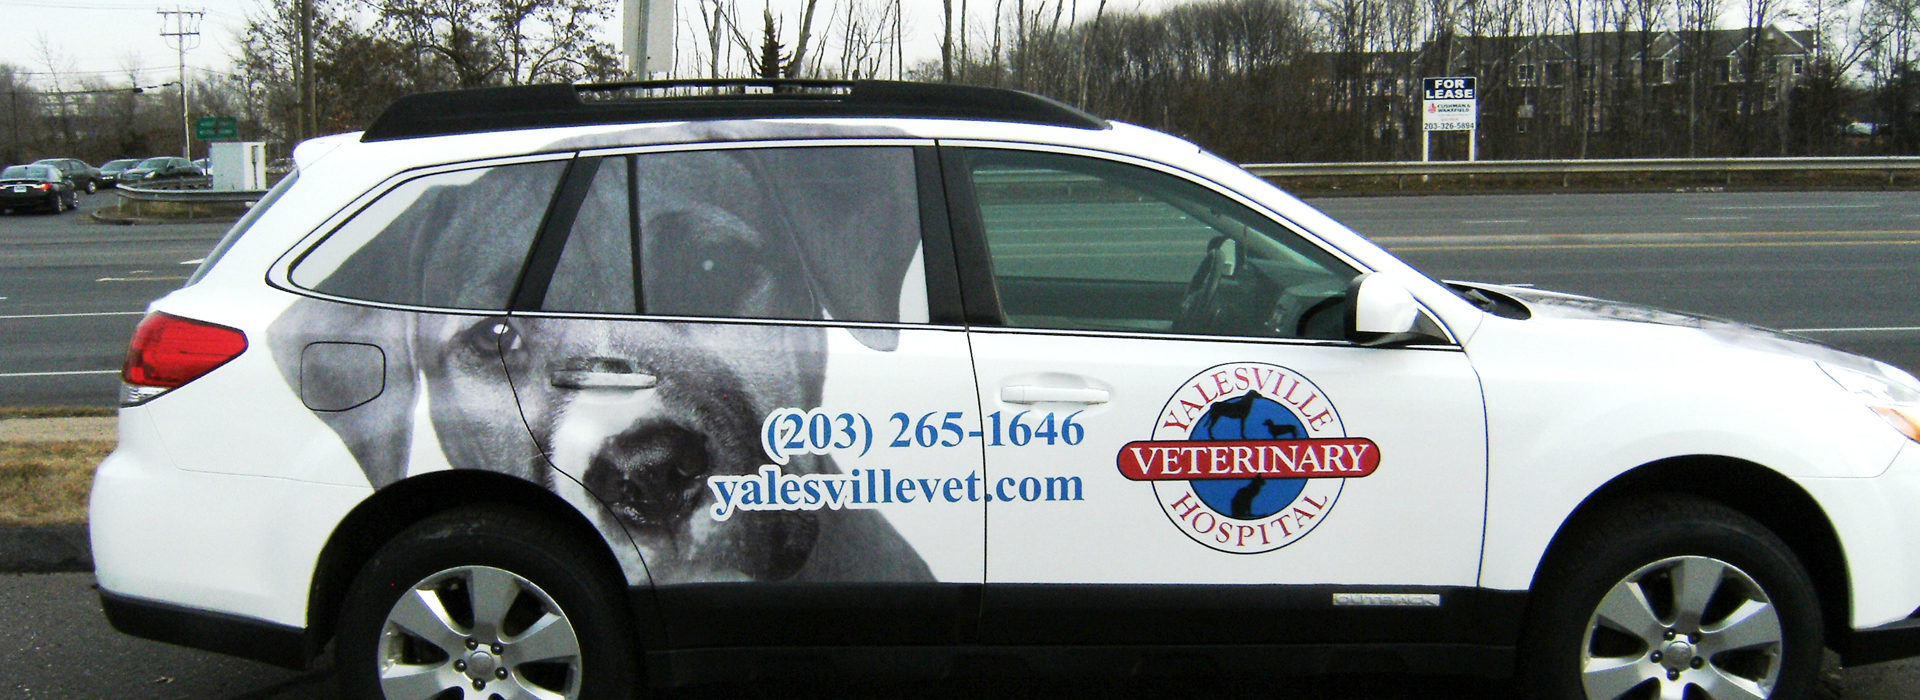 Permalink to: Vehicle Graphics